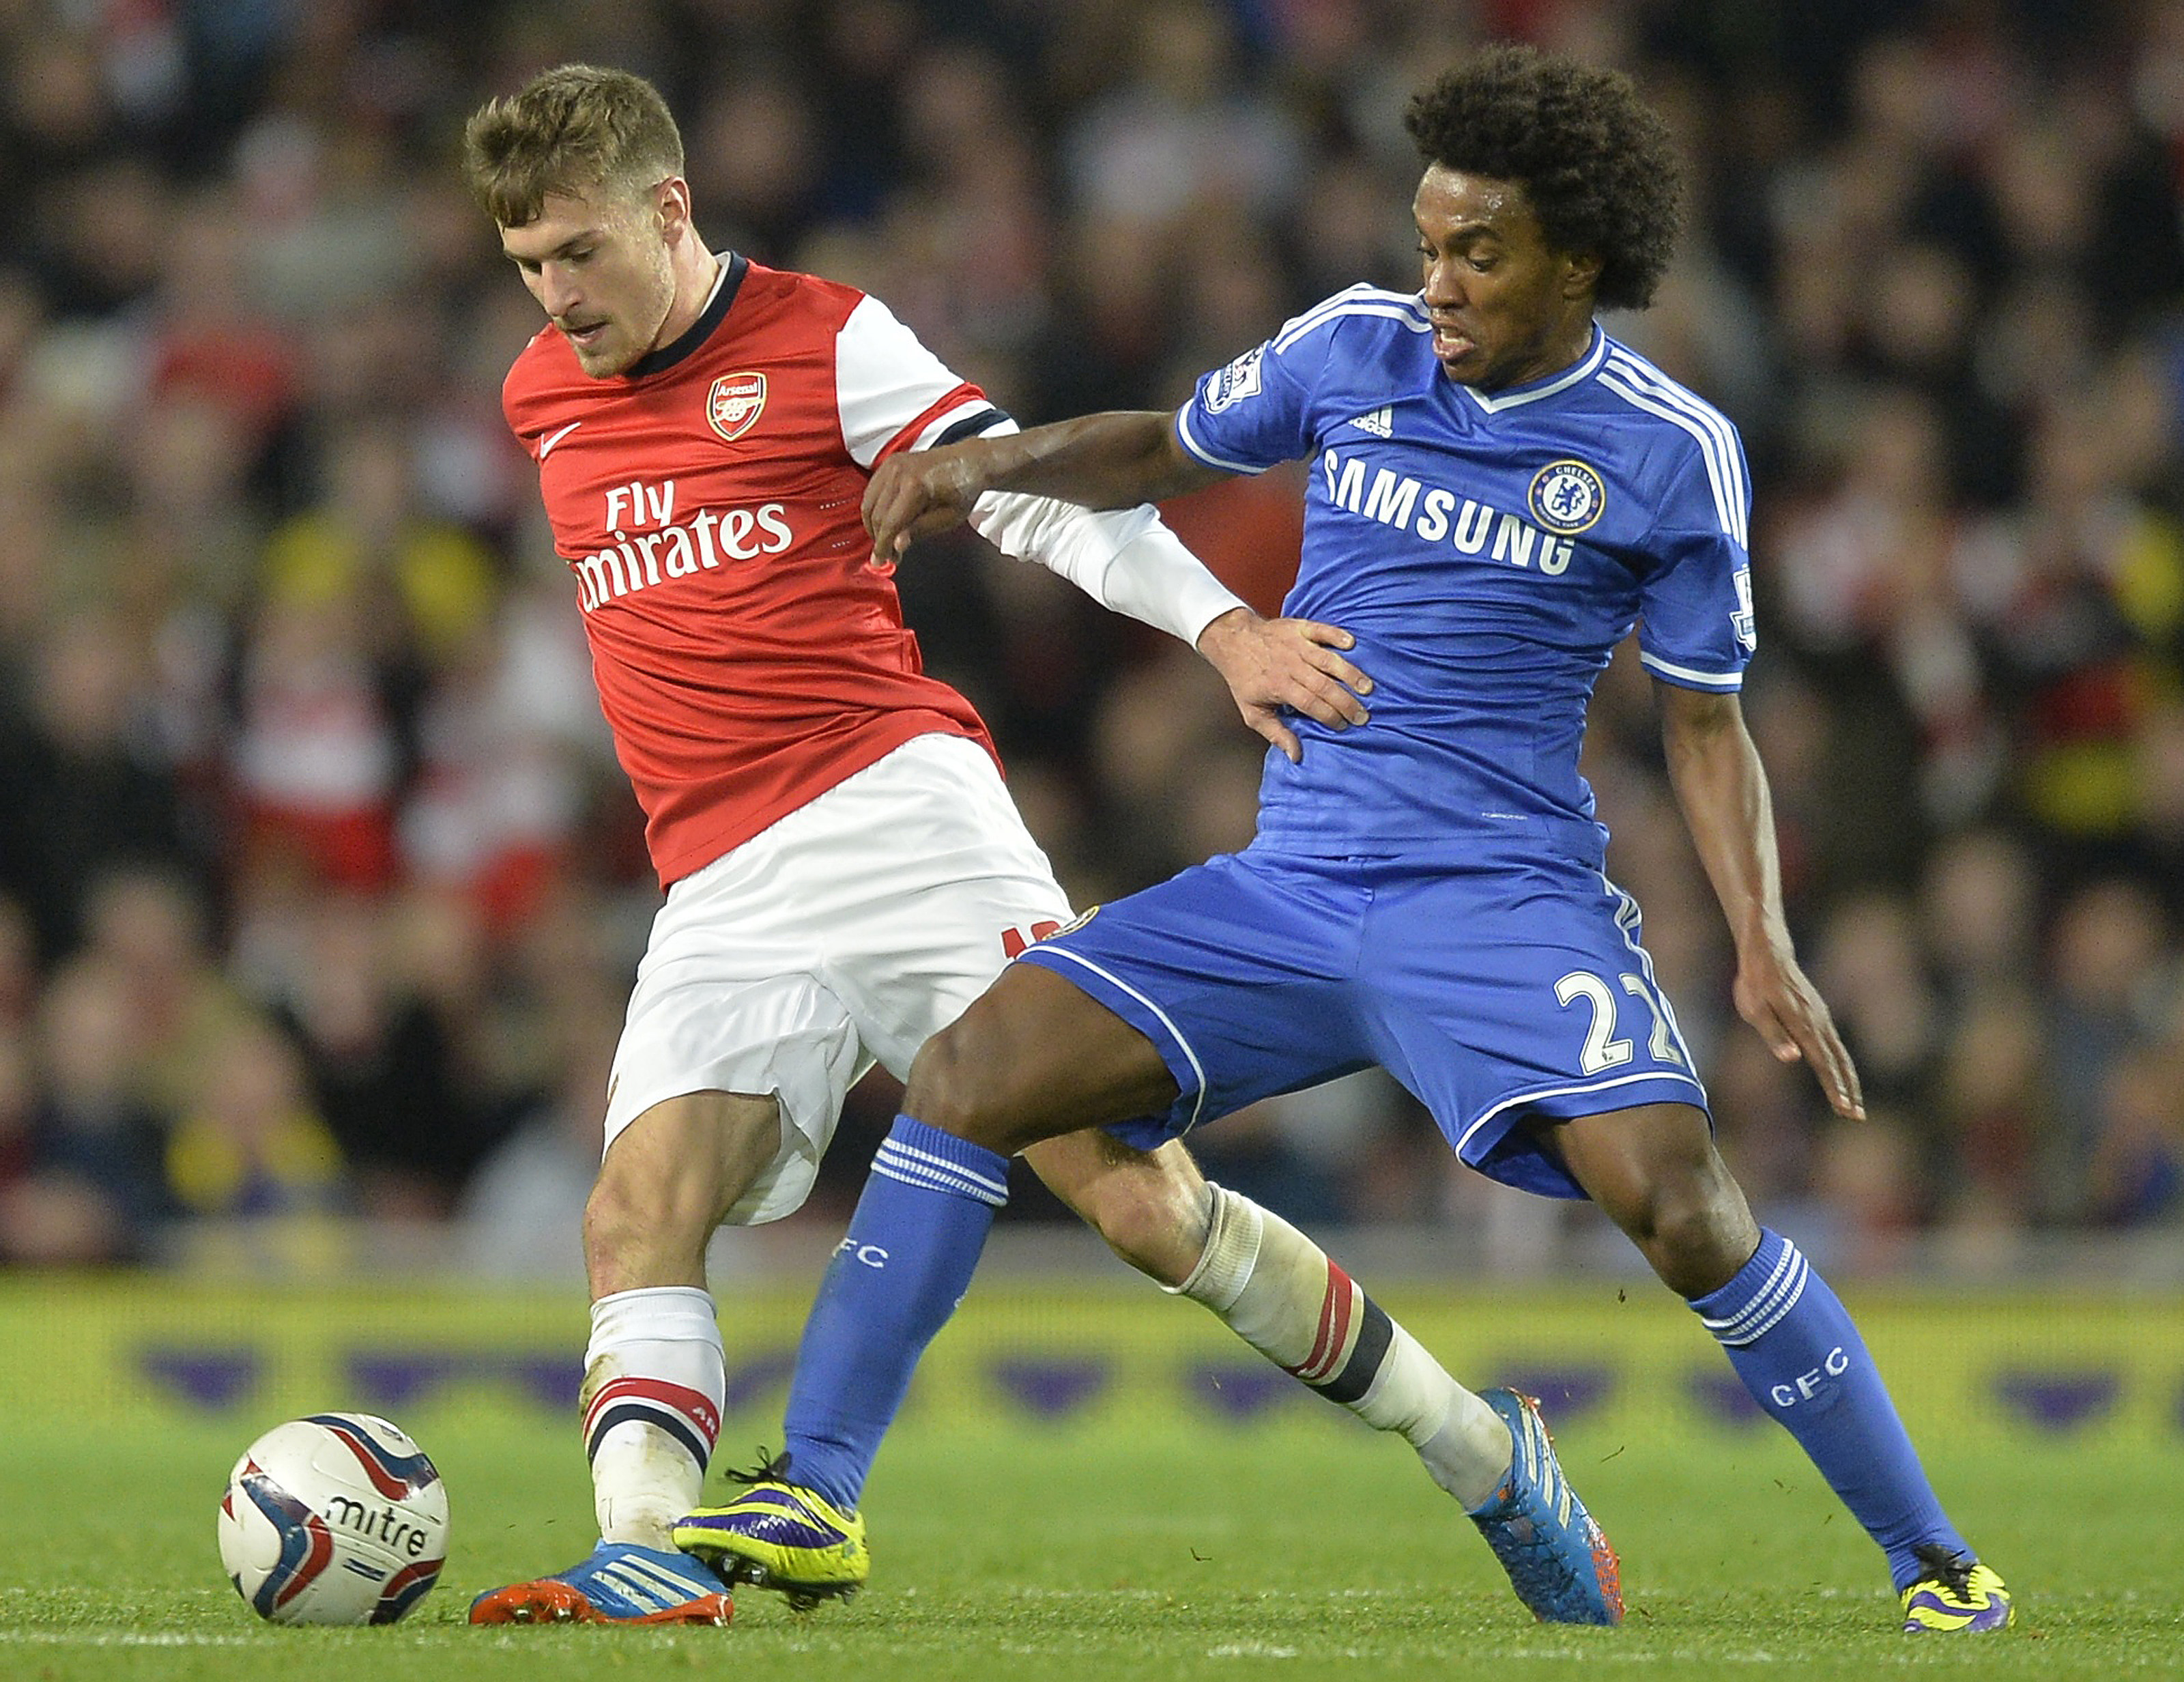 Arsenal's Ramsey challenges Chelsea's Willian during their English League Cup fourth round soccer match at Emirates Stadium in London